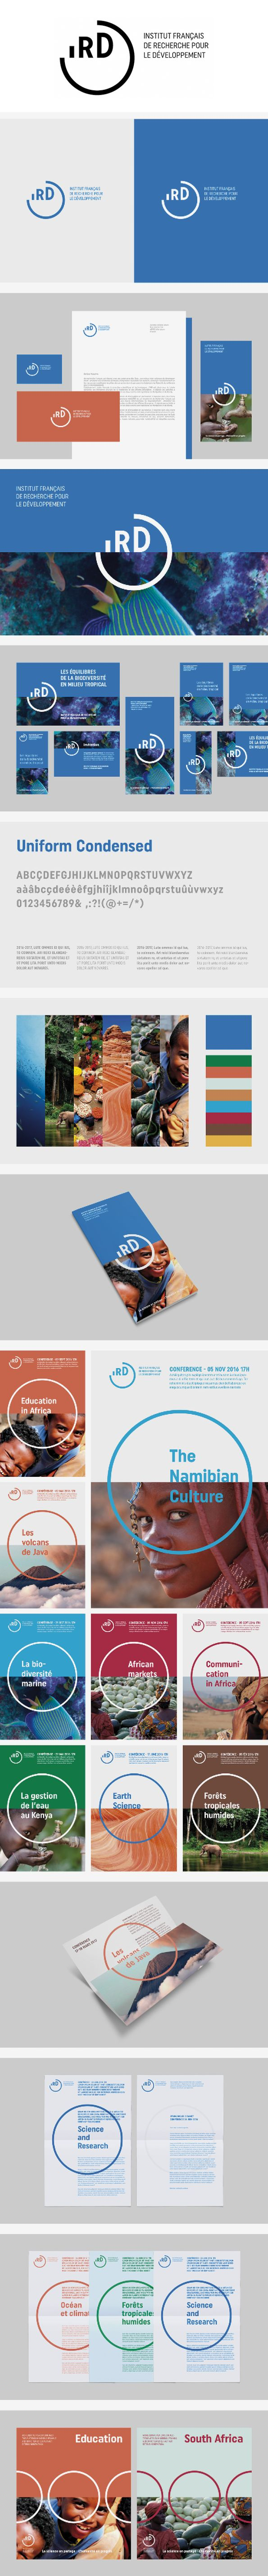 More corporate-designs are collected on: https://pinterest.com/rothenhaeusler/best-of-corporate-design/ · Agency: Grapheine · Client: IRD, Institut de recherche pour le développement · Source: https://www.grapheine.com/portfolio/branding-institut-de-recherche-developpement #branding #identity #corporatedesign